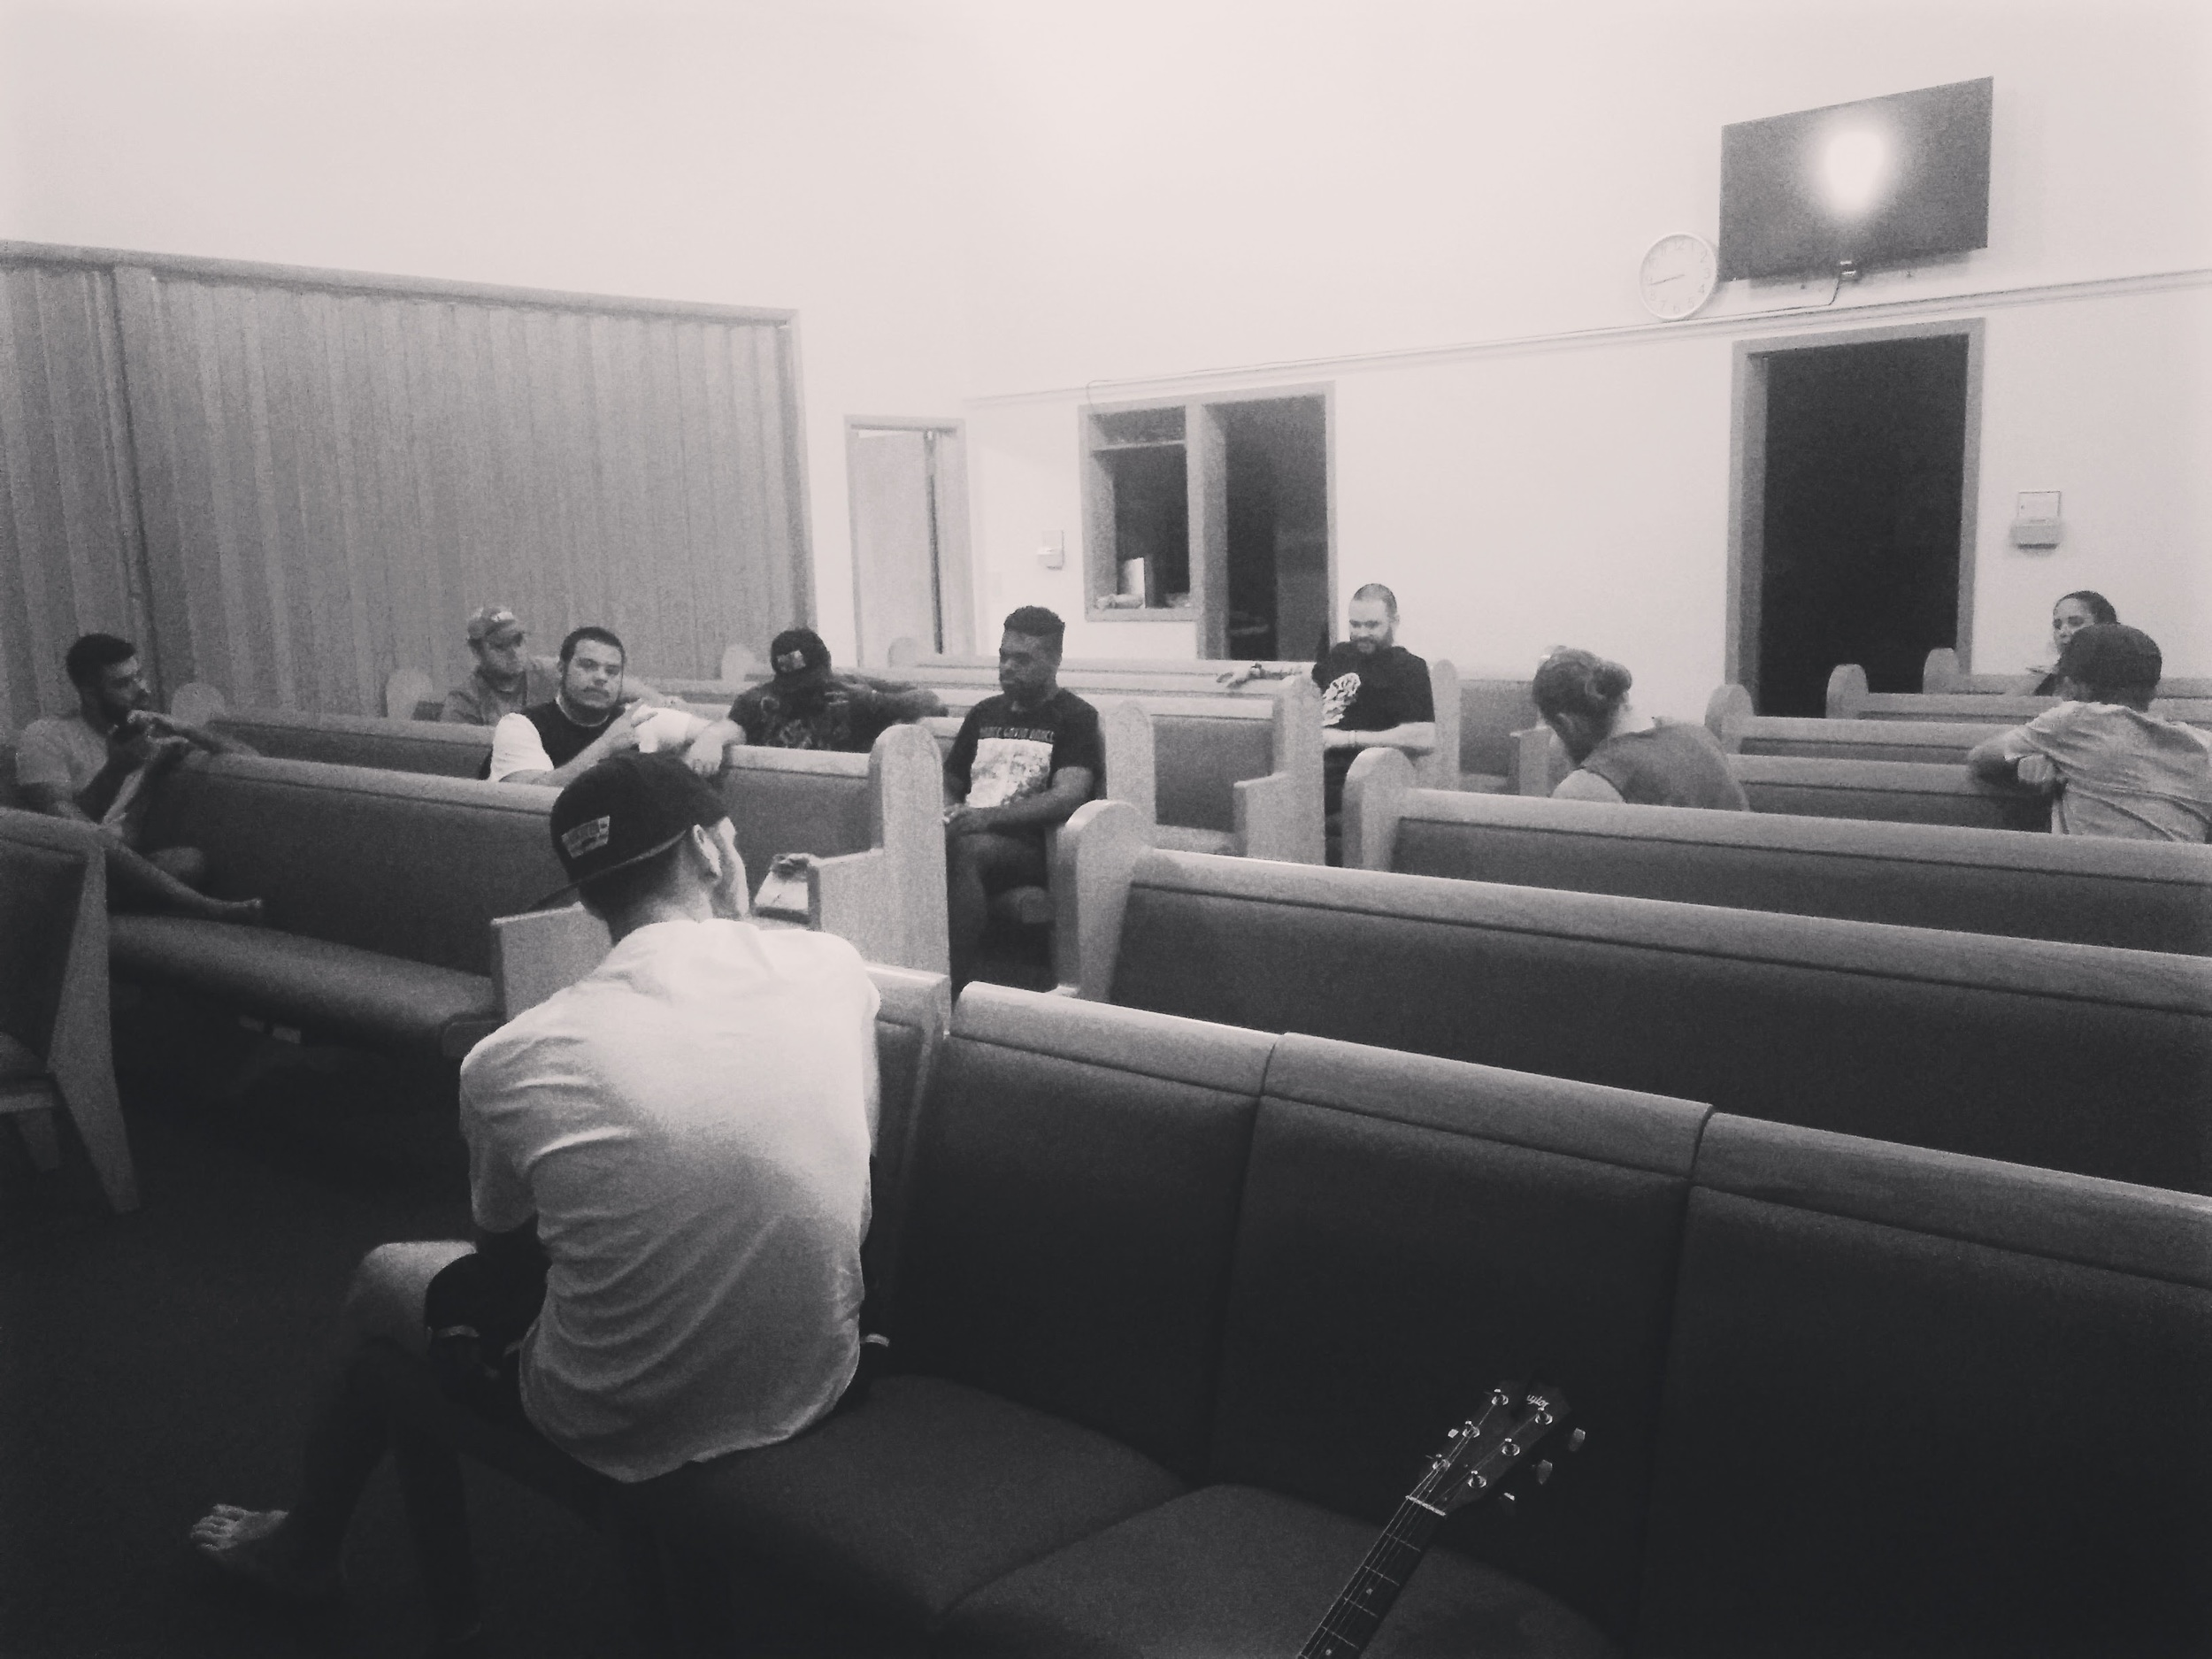 Team briefing and prayer